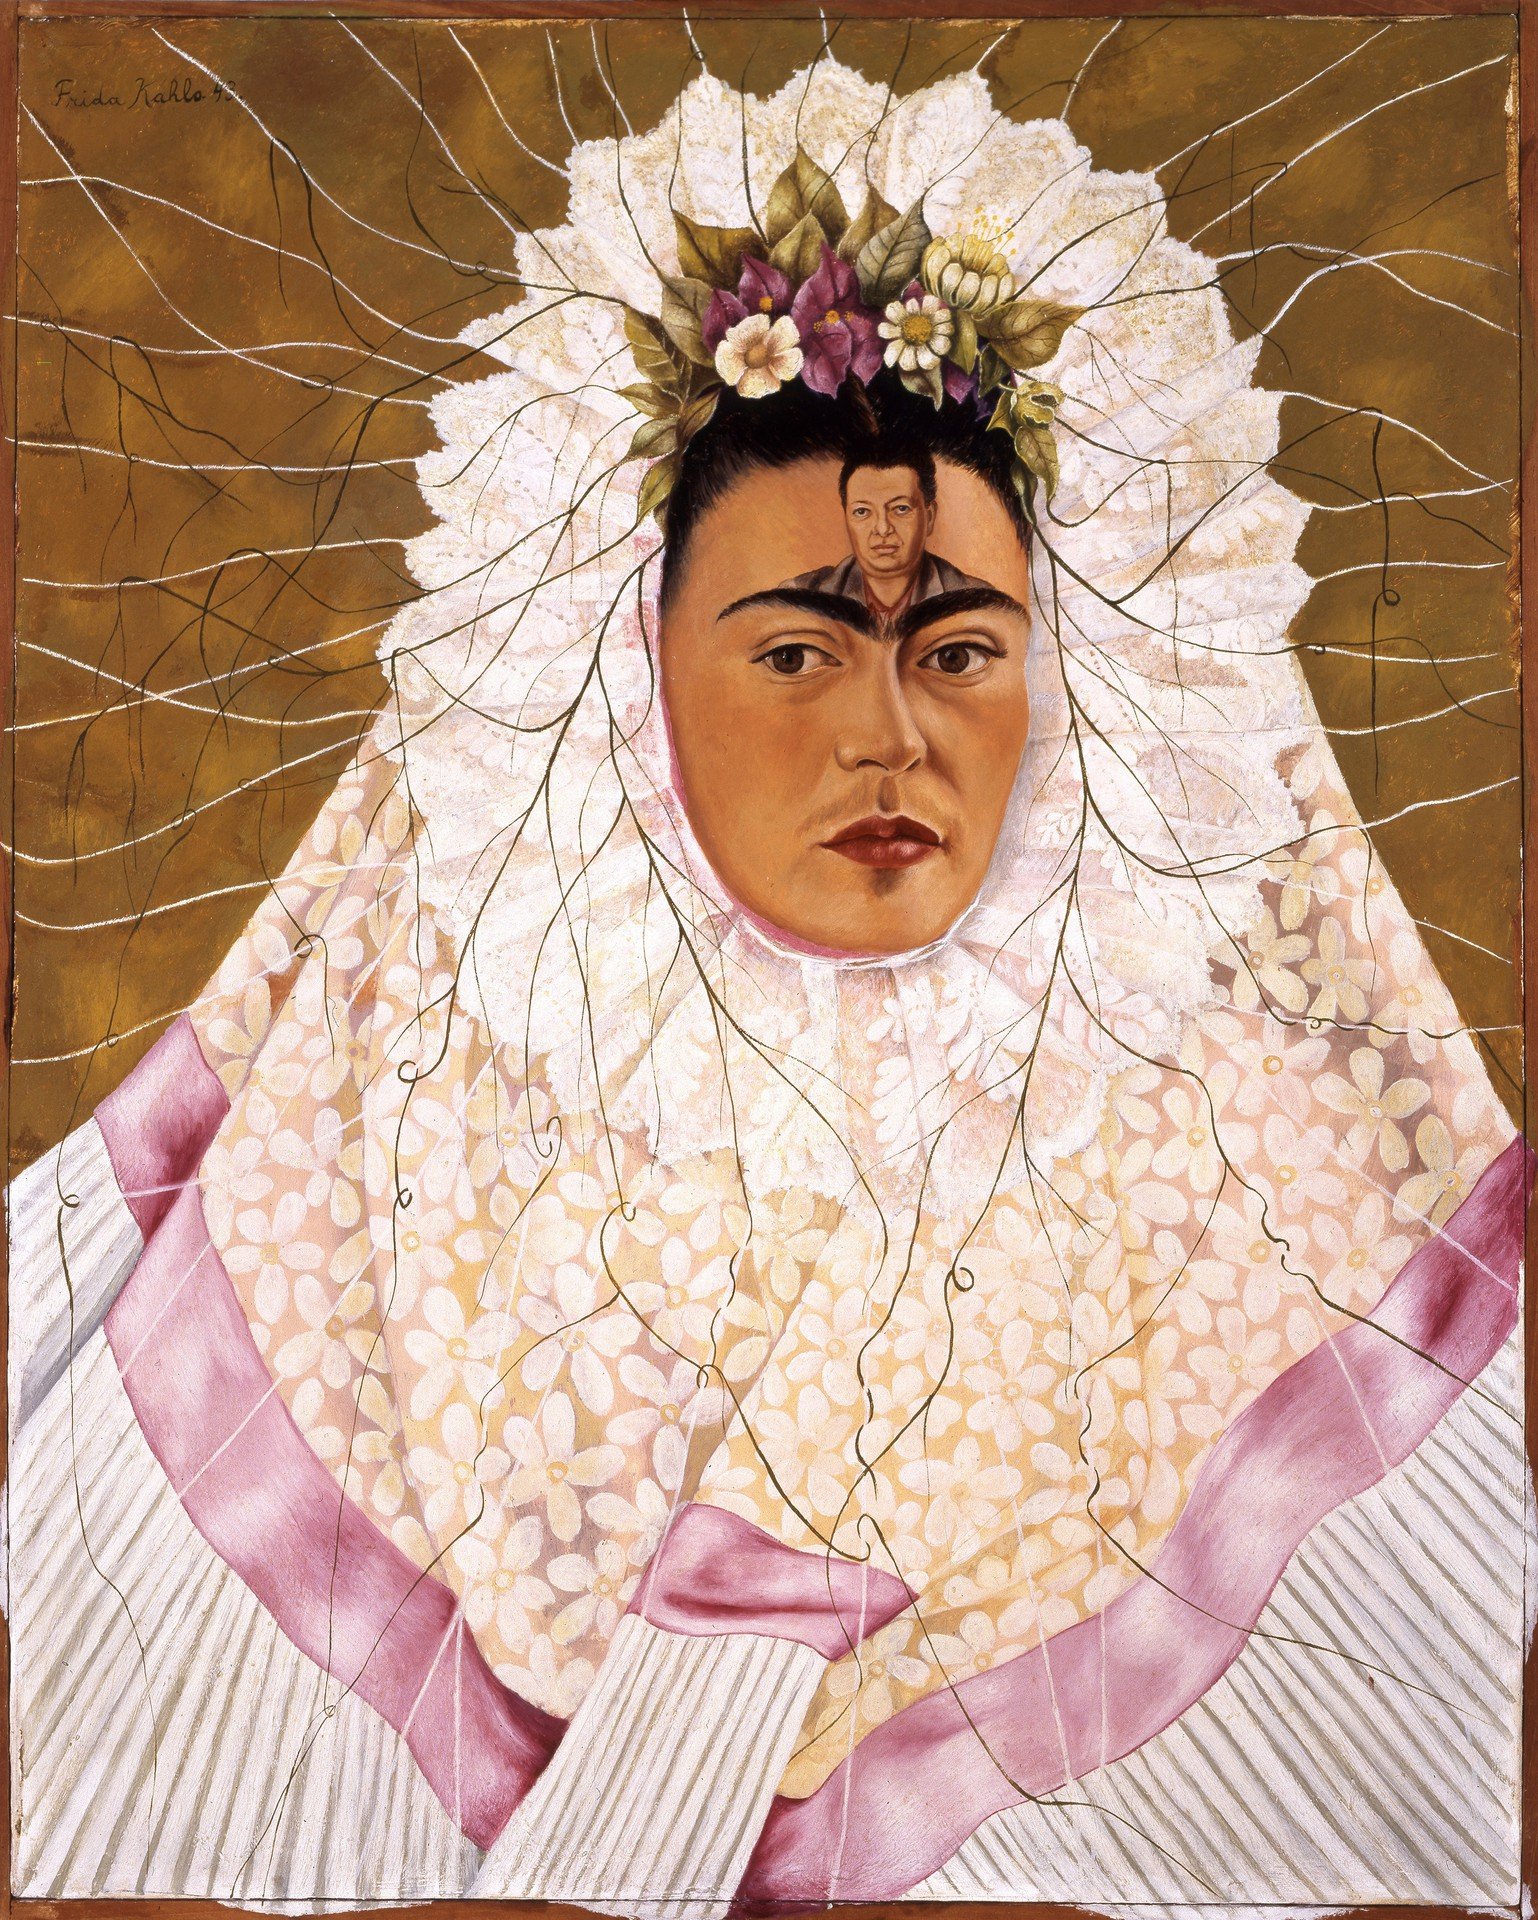 Frida Kahlo, Self-Portrait as Tehuana or Diego in My Thoughts, 1943, The Jacques and Natasha Gelman Collection of 20˚Century Mexican Art and The Vergel Foundation © 2016 Banco de México Diego Rivera Frida Kahlo Museums Trust, Mexico, D.F. / Artists Rights Society (ARS), New York